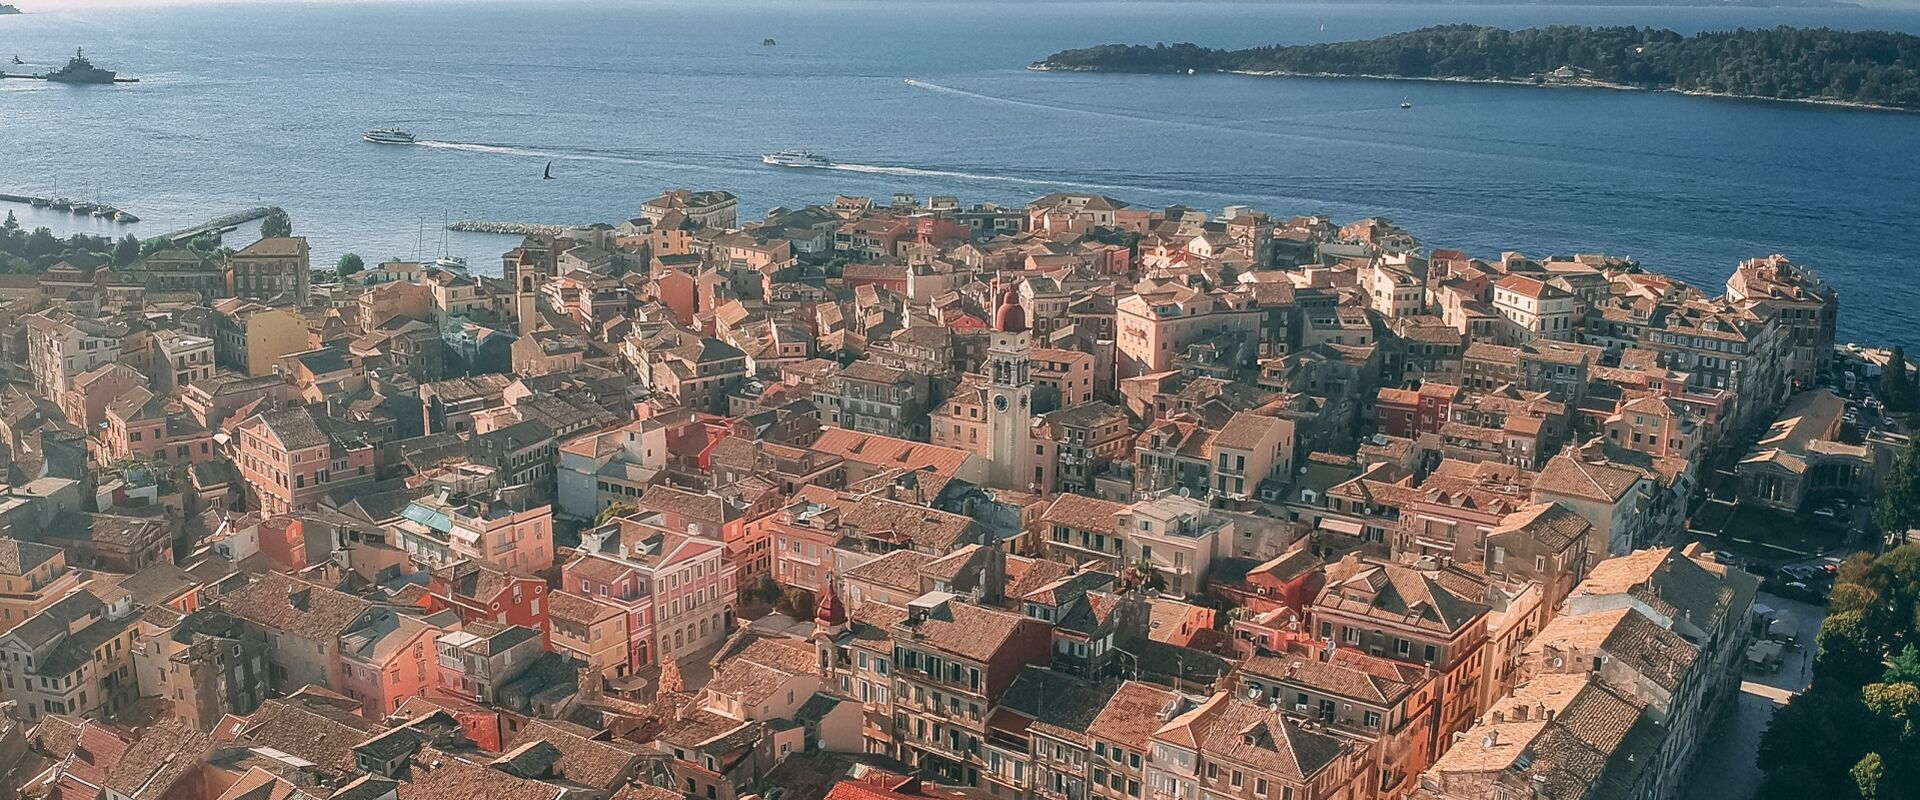 Aerial view of Corfu Old Town, Greece